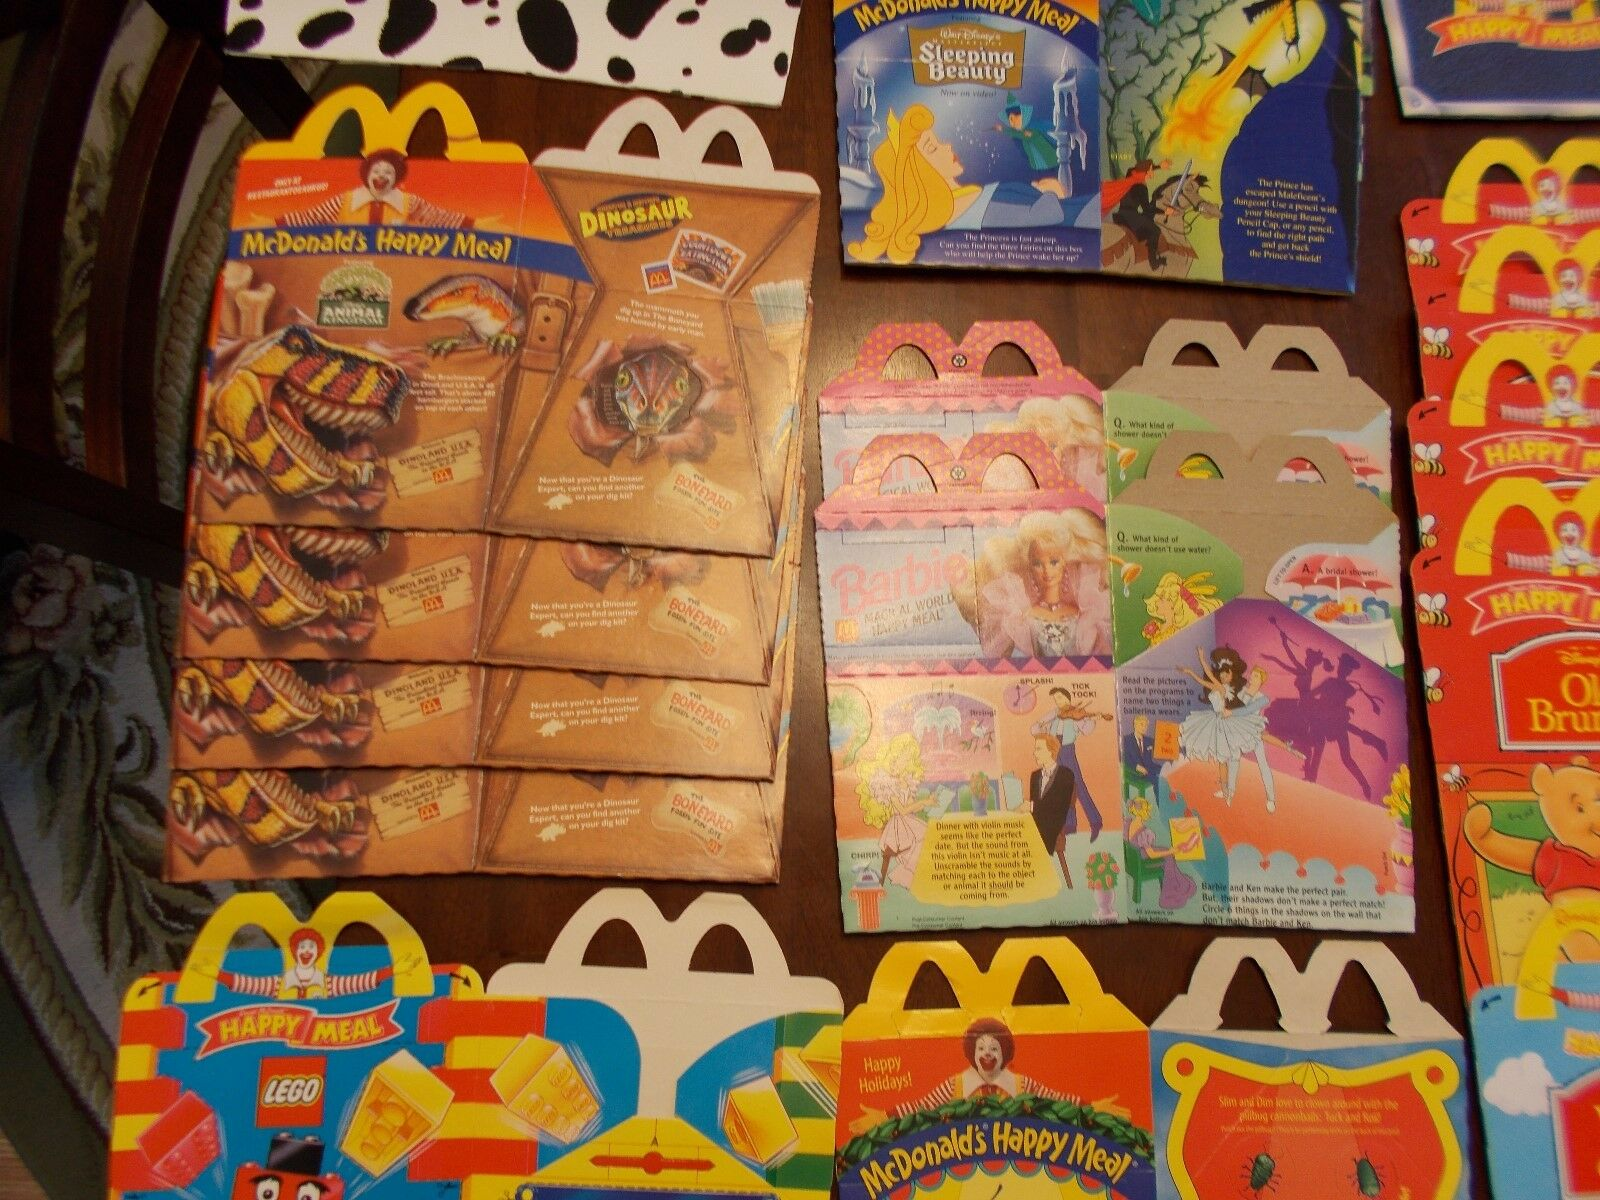 LOT OF 32 VINTAGE McDonalds HAPPY HAPPY HAPPY MEAL BOXES +